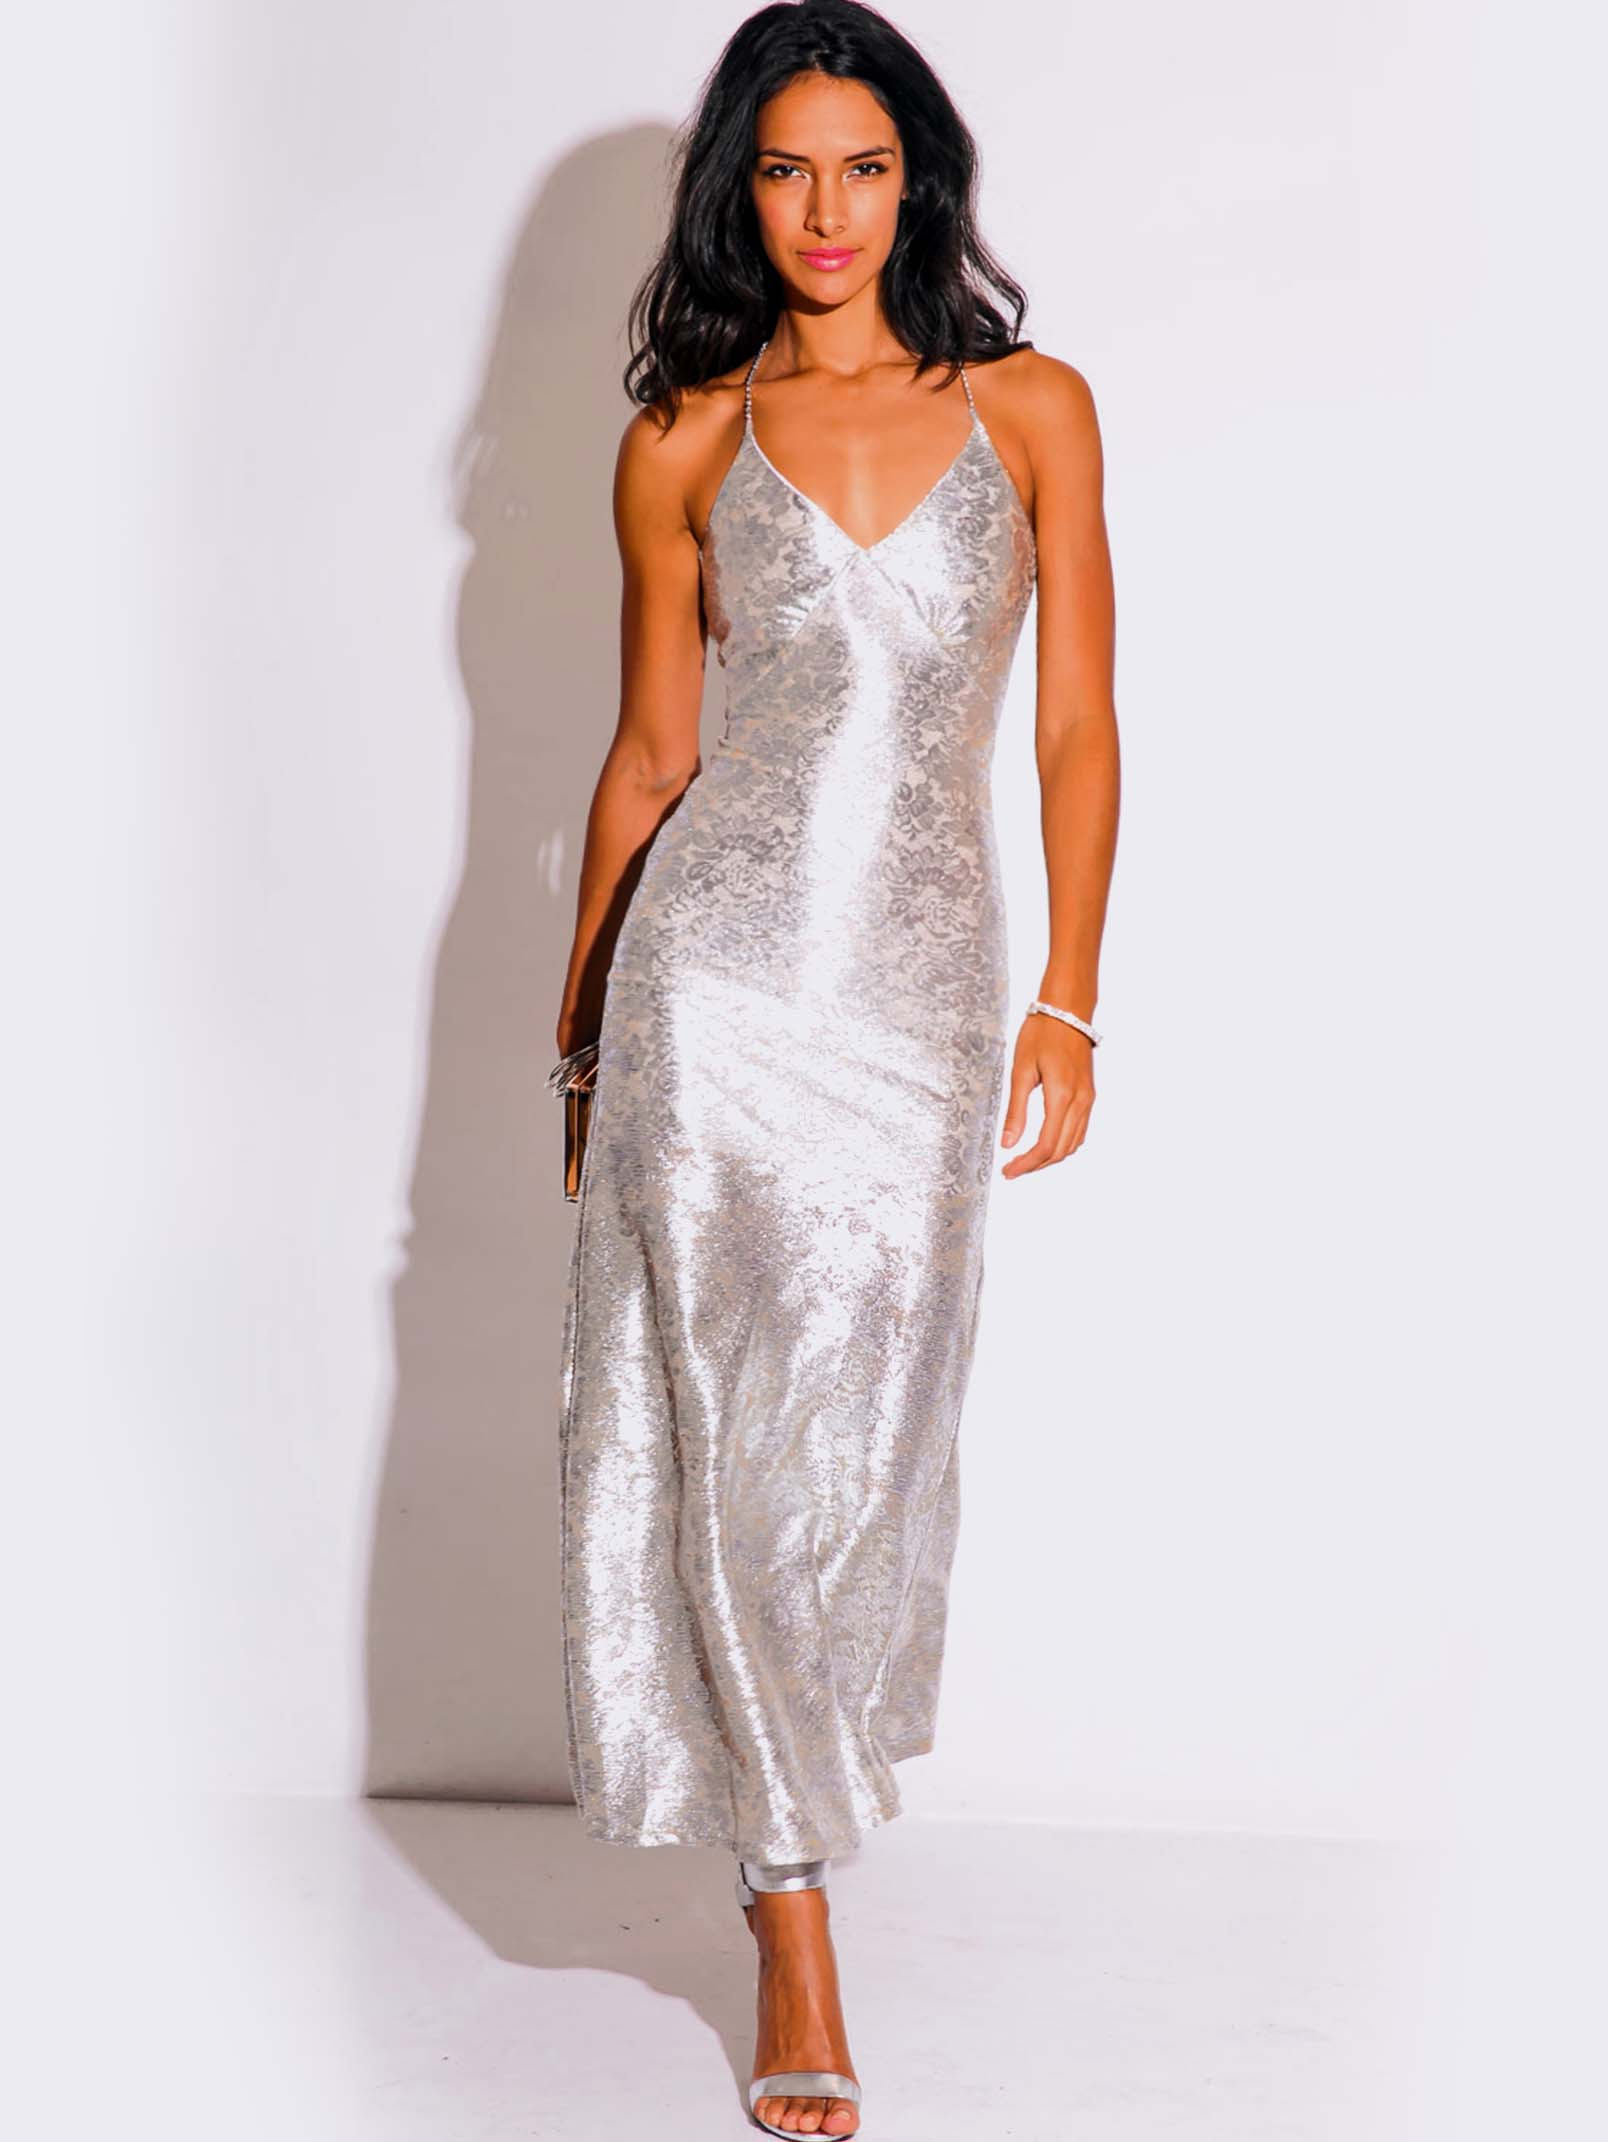 edc63d0d3a9a LIGHT SILVER METALLIC FORMAL EVENING DRESS | ModishOnline.com